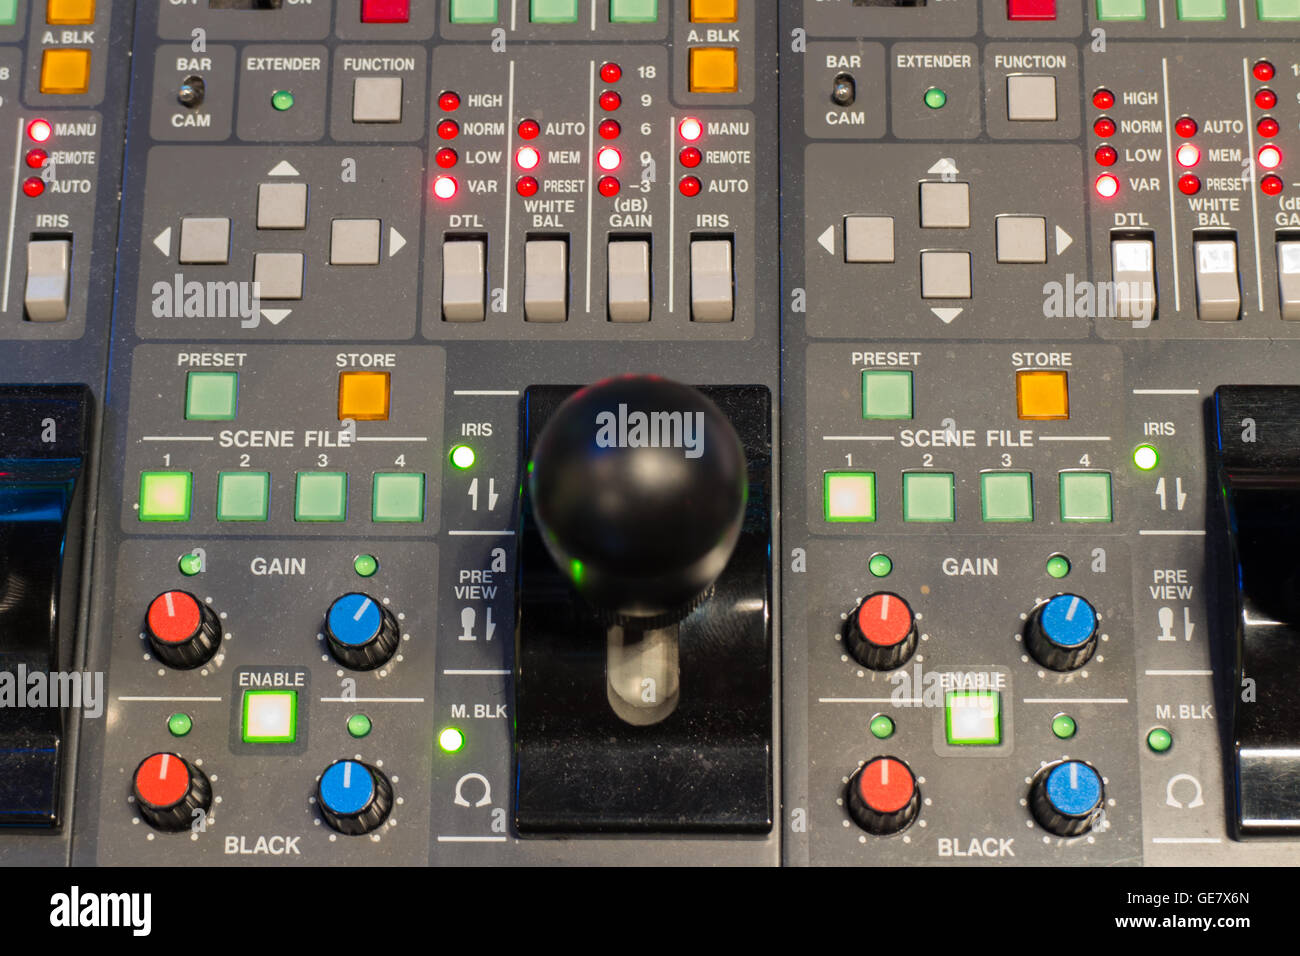 buttons equipment for camera control panel - Stock Image